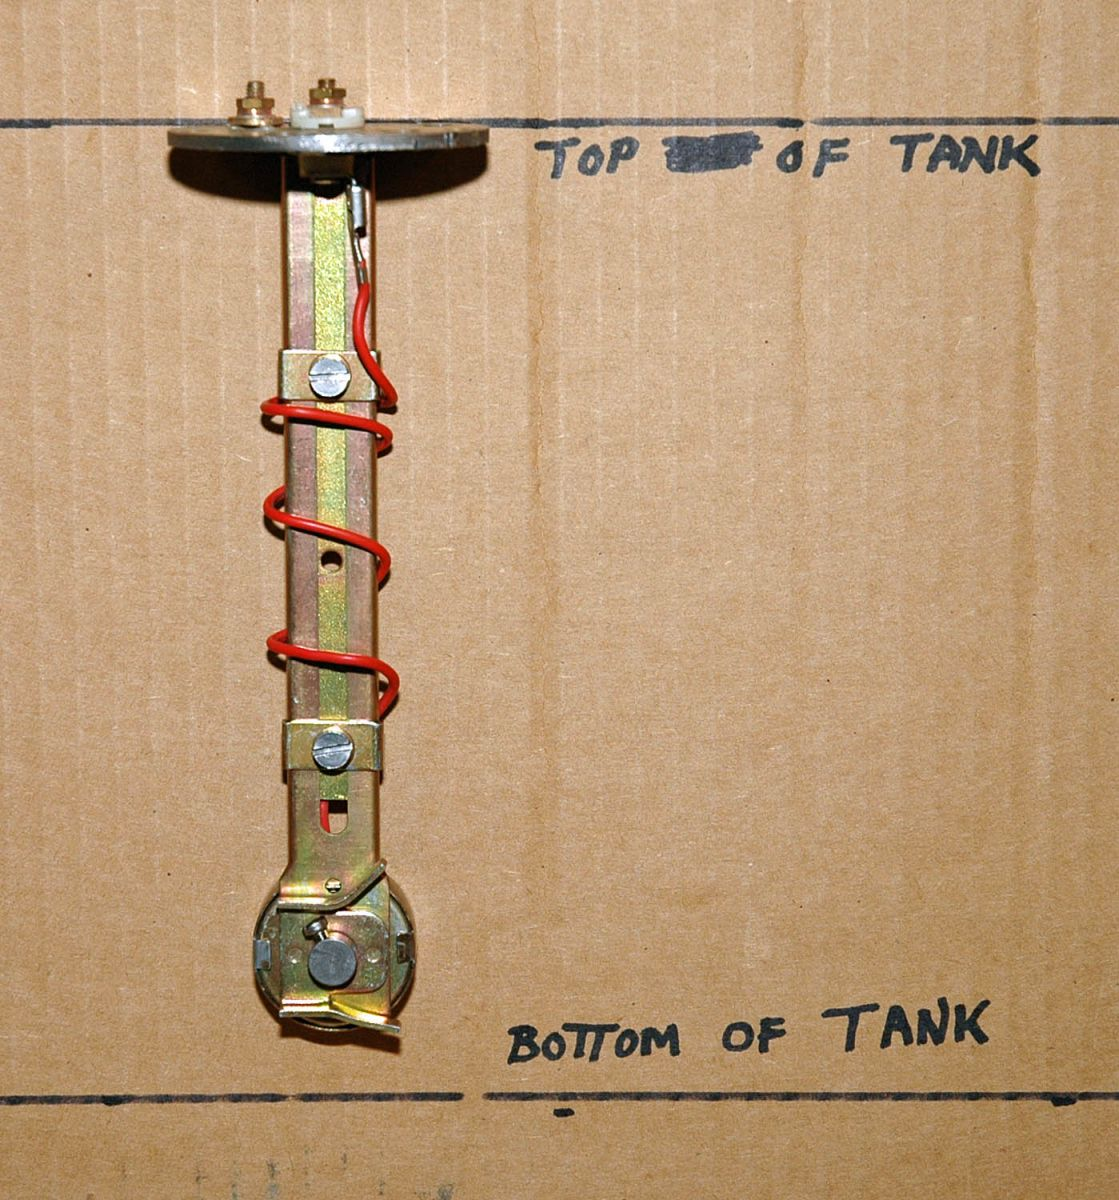 This is a typical fuel tank sending unit with an adjustable float level.  Cardboard marked with top and bottom of tank indicated shows where uncut  sender ...